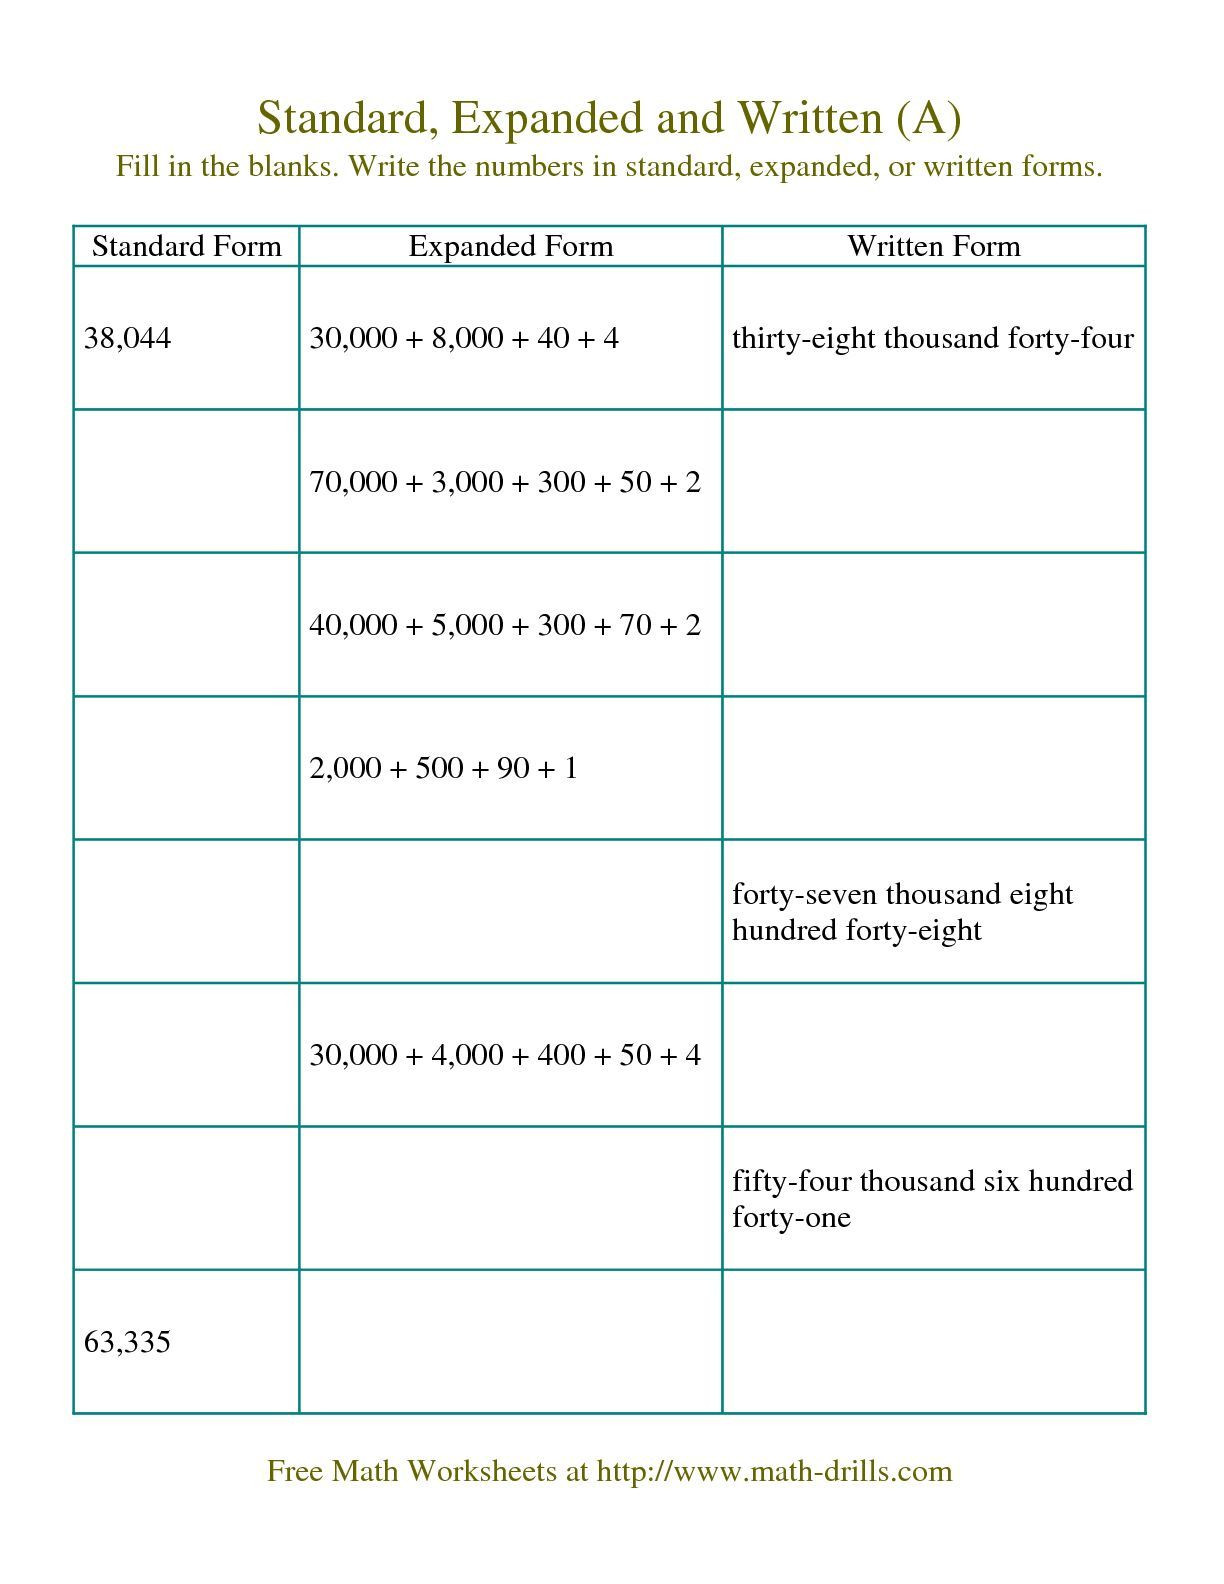 Word form Worksheets 4th Grade the Converting Between Standard Expanded and Written forms